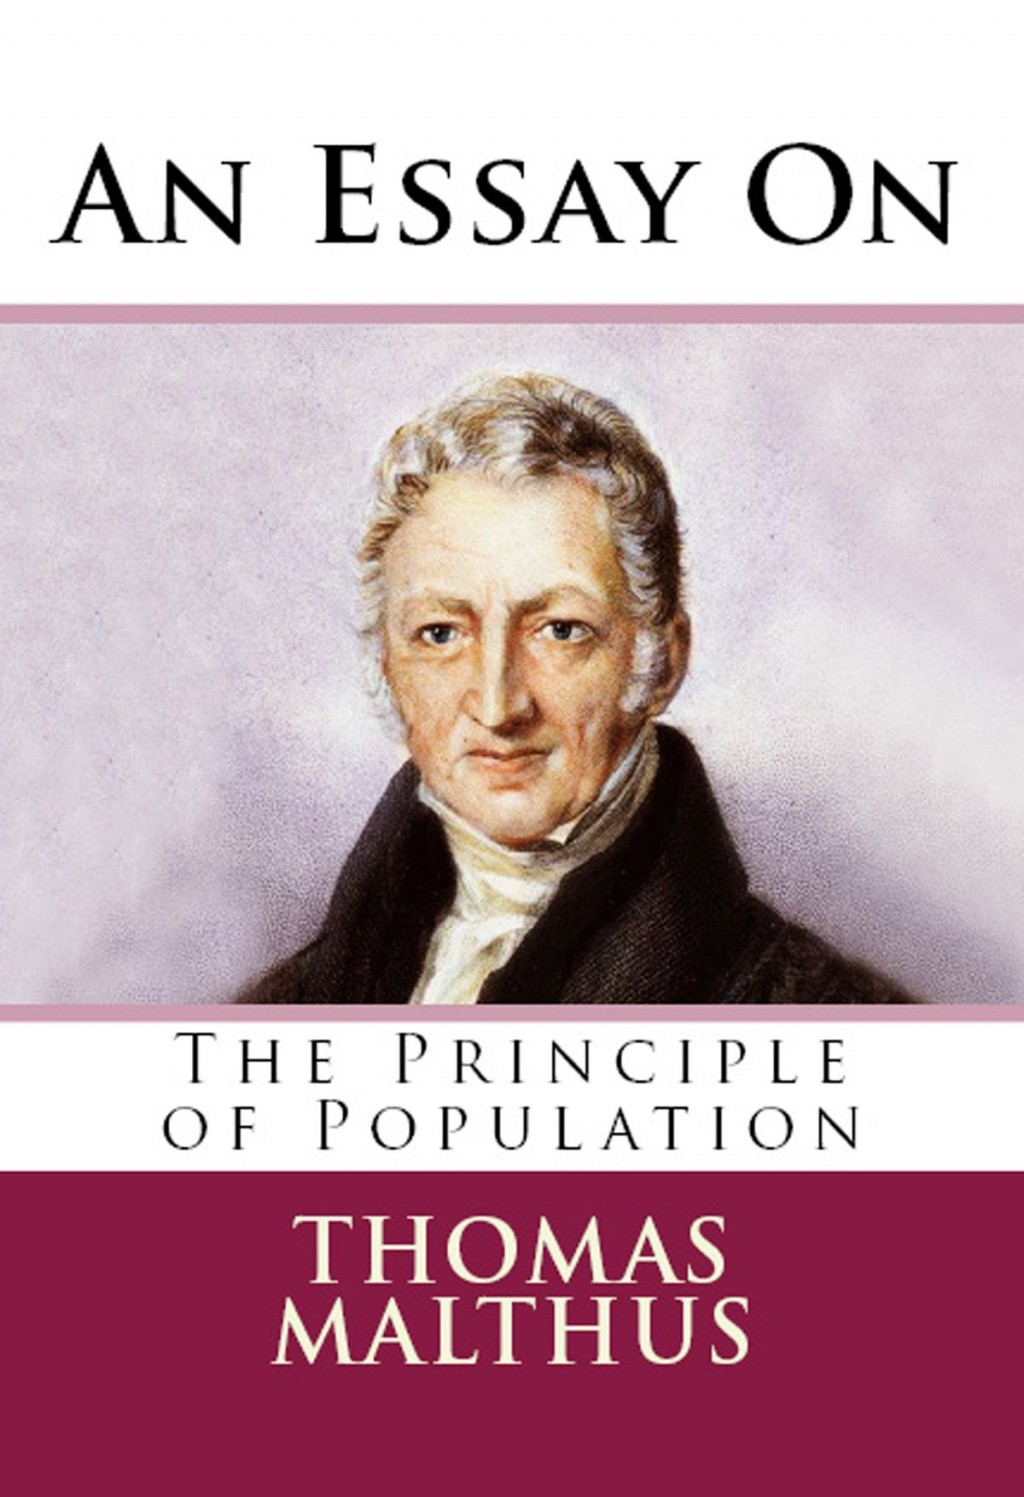 014 An Essay On The Principle Of Population Example Fascinating By Thomas Malthus Pdf In Concluded Which Following Large